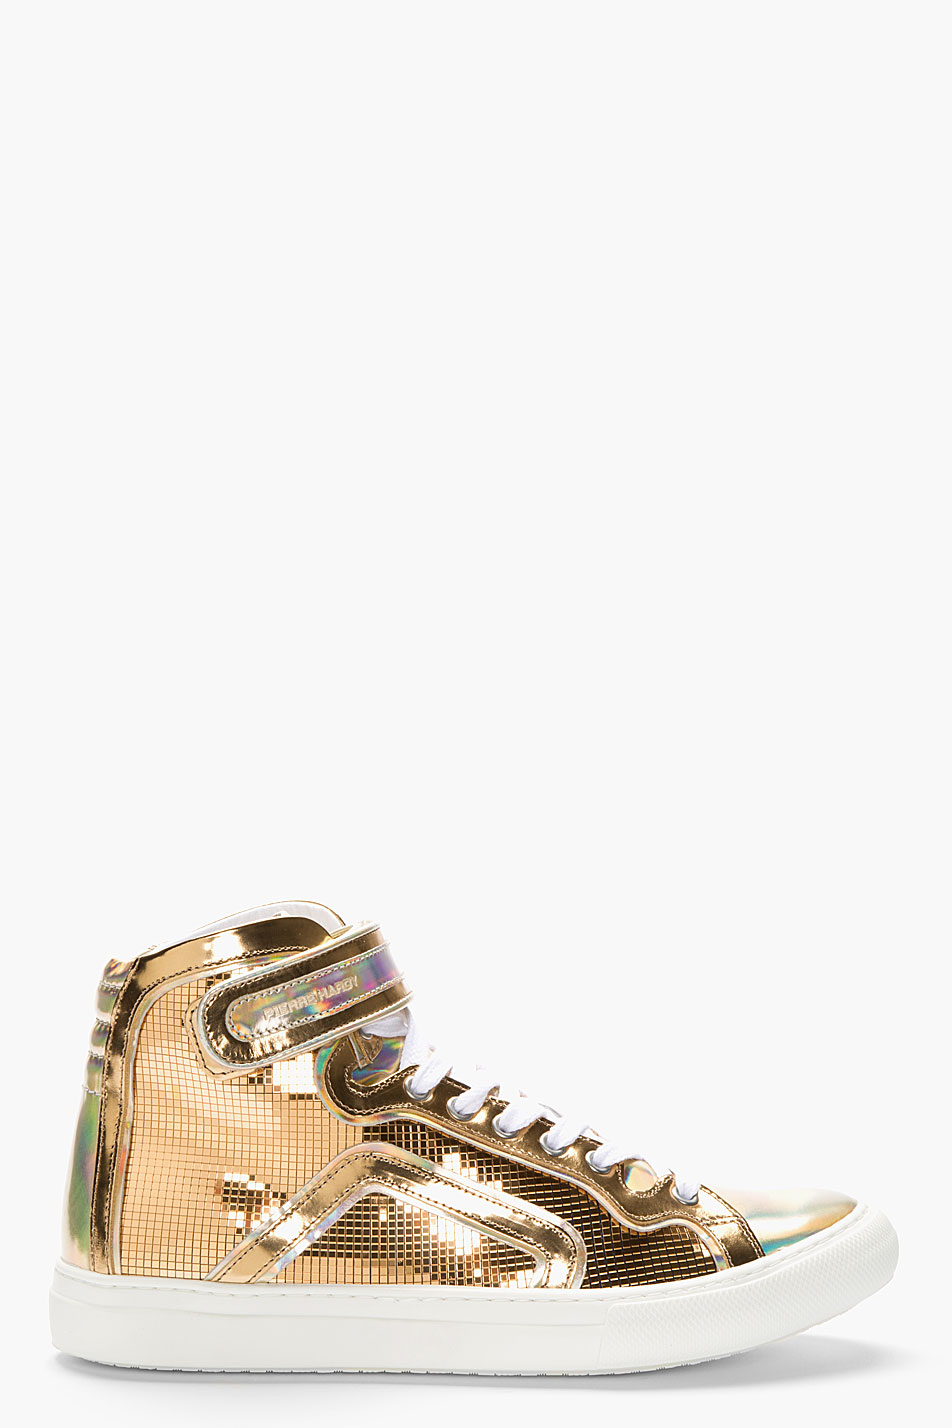 High Top Gold Shoes